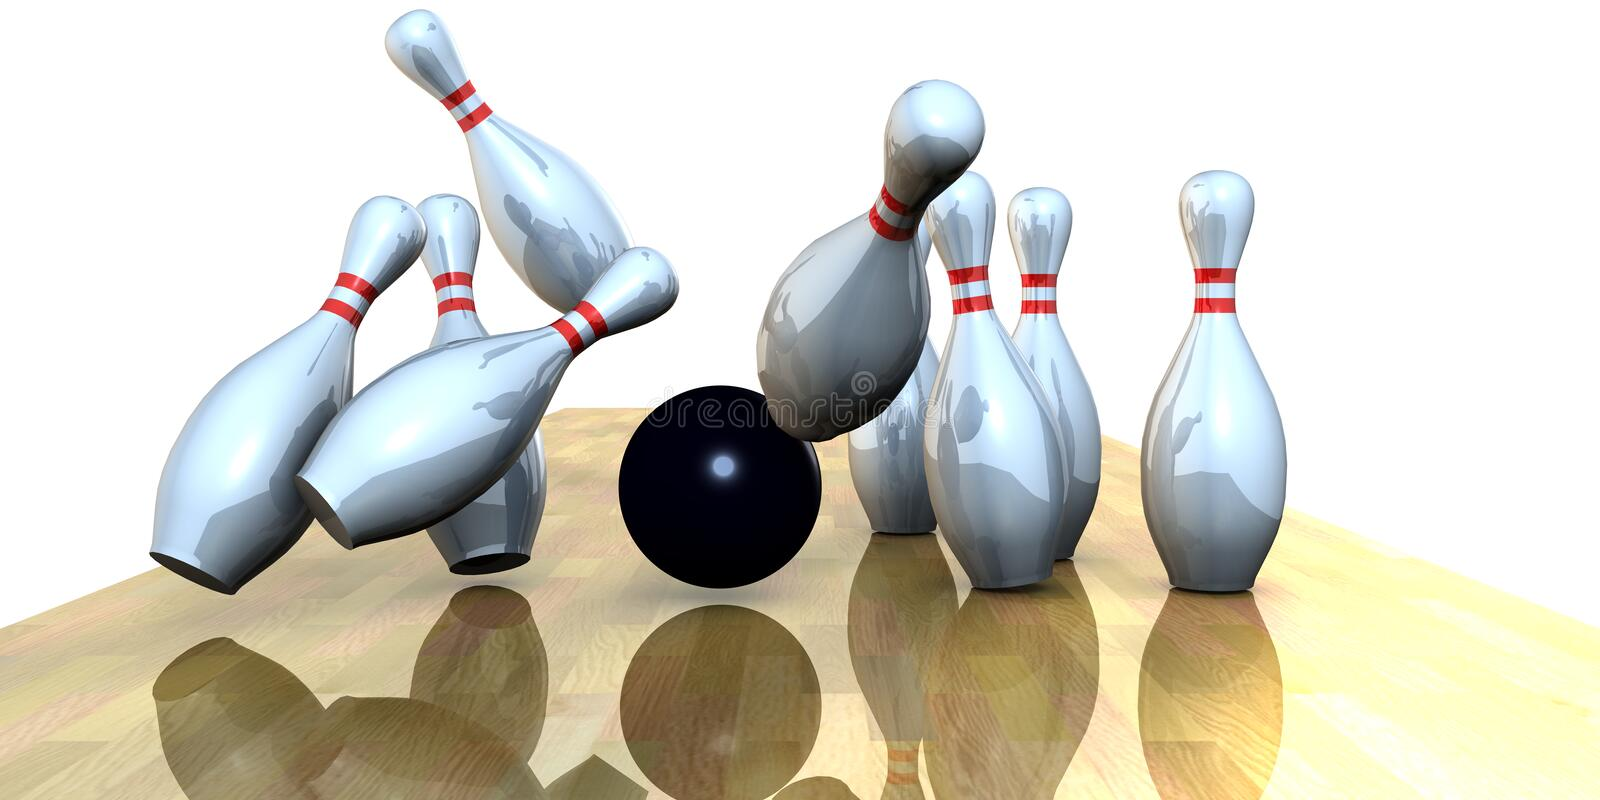 Bowling vector illustration